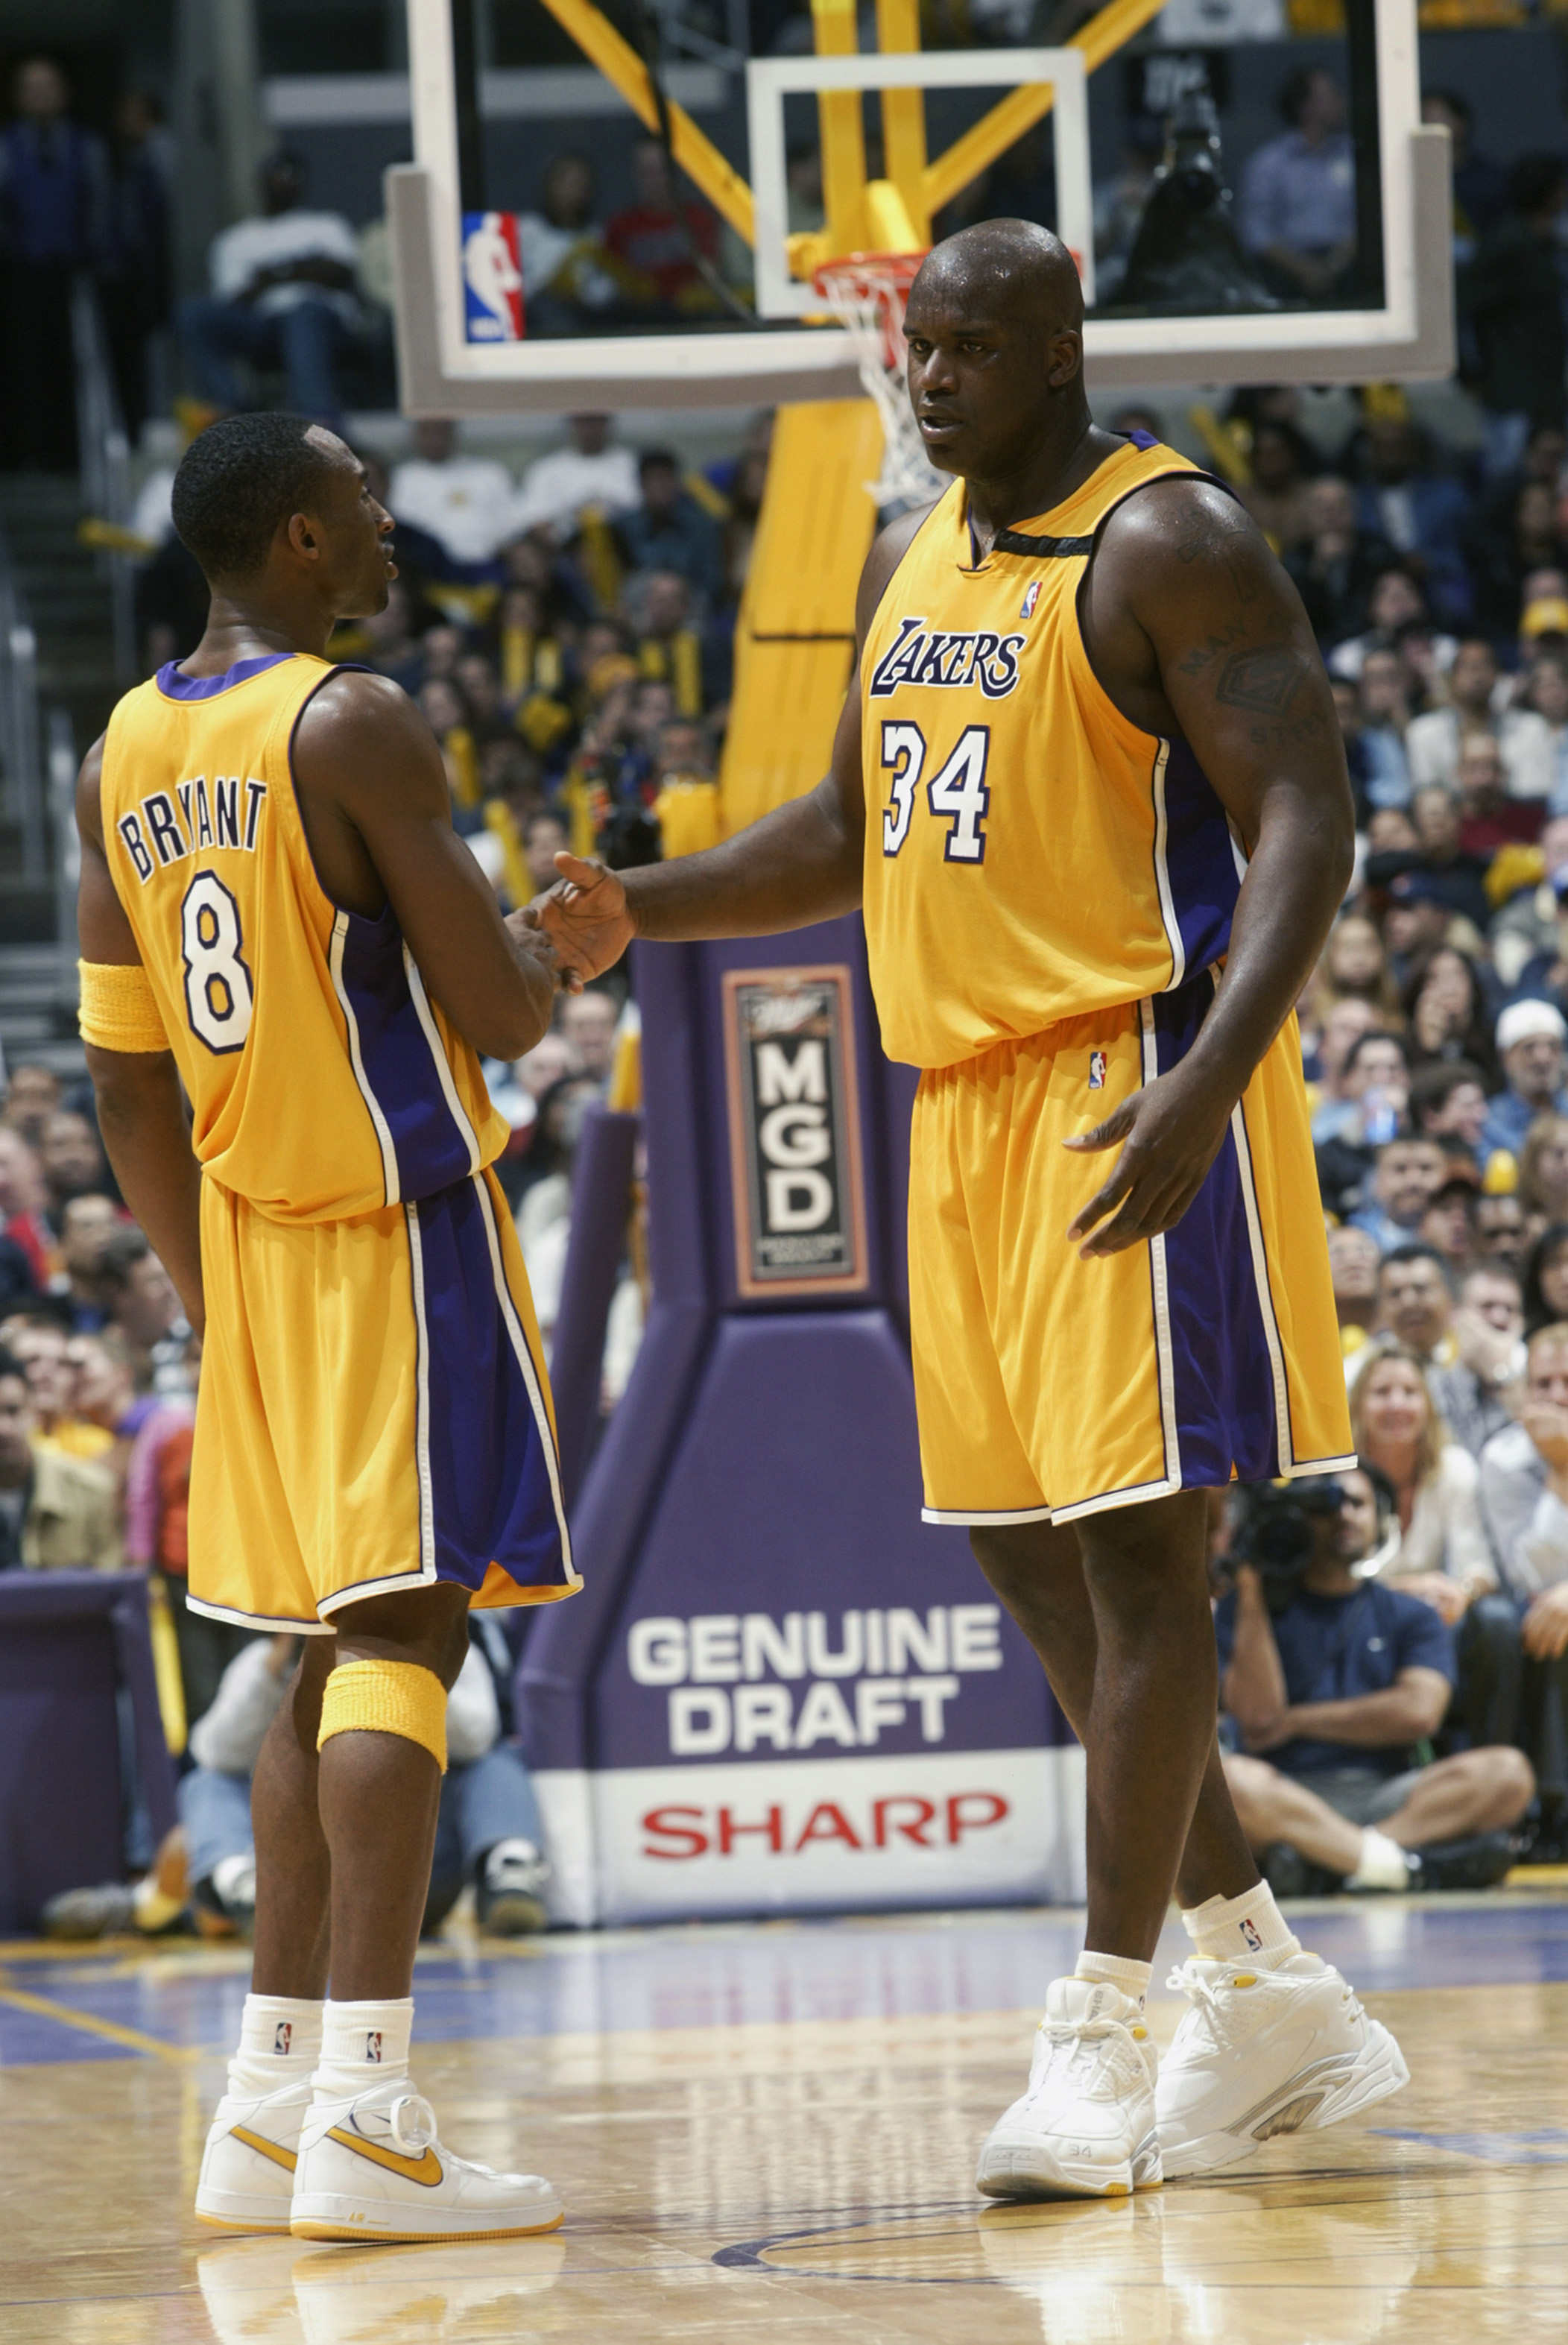 LOS ANGELES - NOVEMBER 22:  Kobe Bryant #8 and Shaquille O'Neal #34 of the Los Angeles Lakers congratulate each other during the NBA game against the Chicago Bulls at Staples Center on November 22, 2002 in Los Angeles, California.  The Lakers won 86-73.